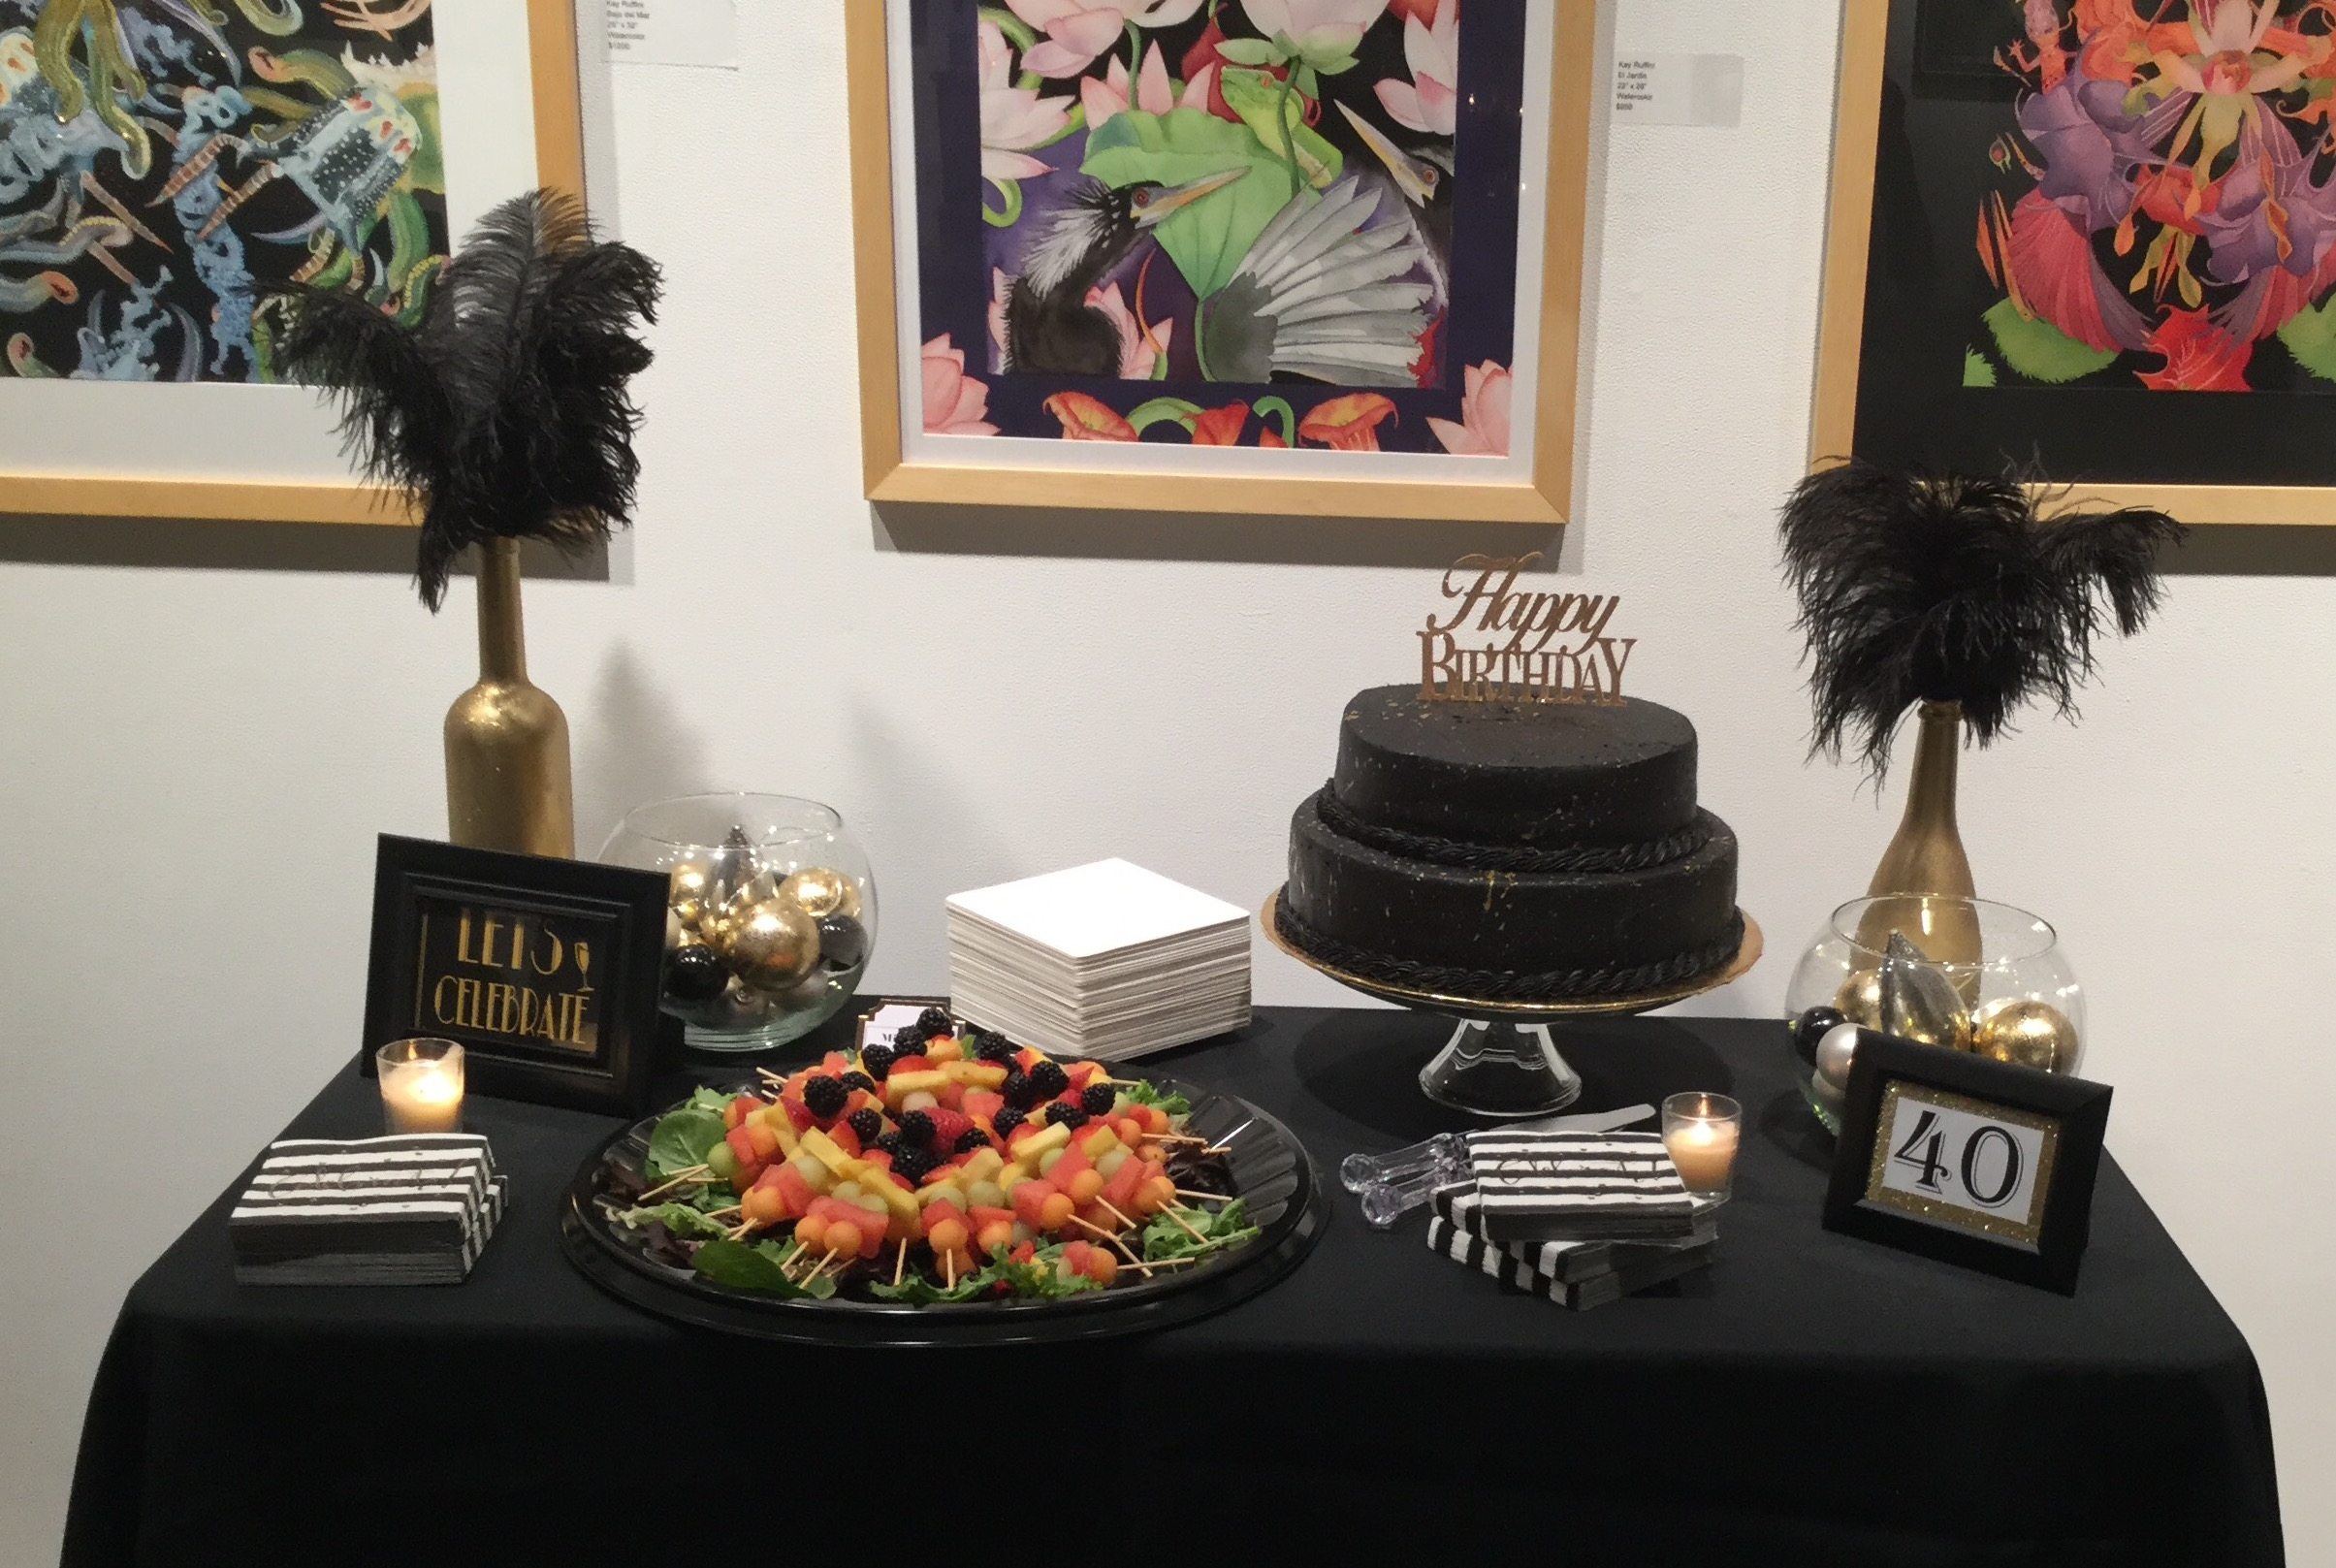 40th Birthday   Venue:  The Liberty Art Gallery & Event Space, Long Beach   Cake:  Bubba Sweets   Over The Moon Package: Full Design, Planning, & Coordination